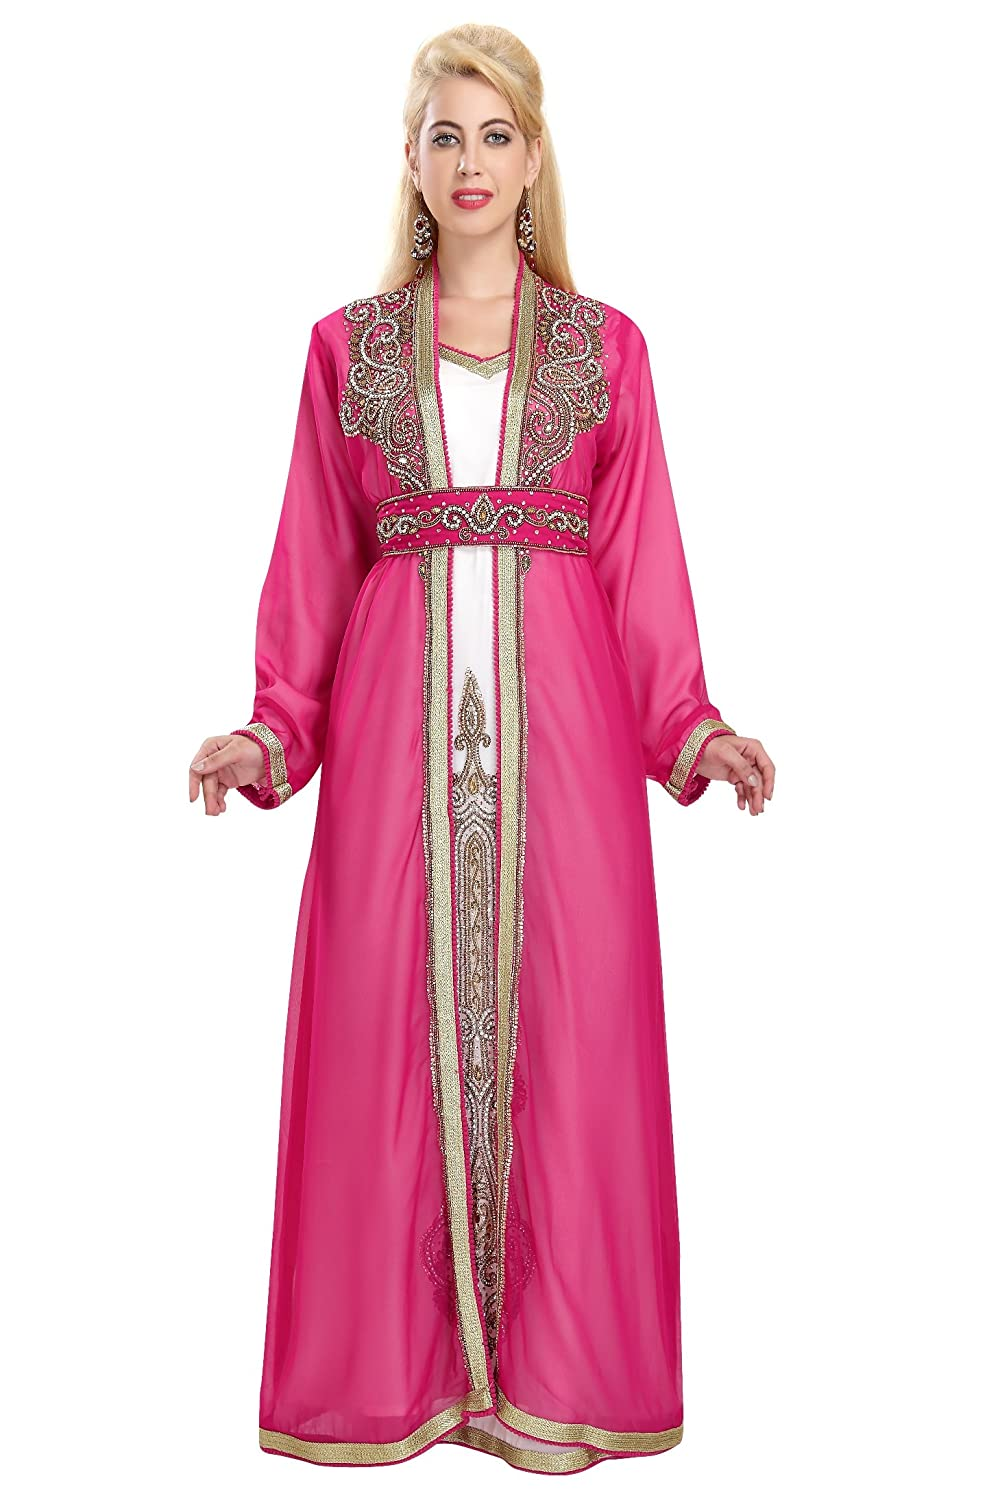 Robe Dubai Khaleeji Thobe Caftan With Unique Design By Maxim Creation 5866